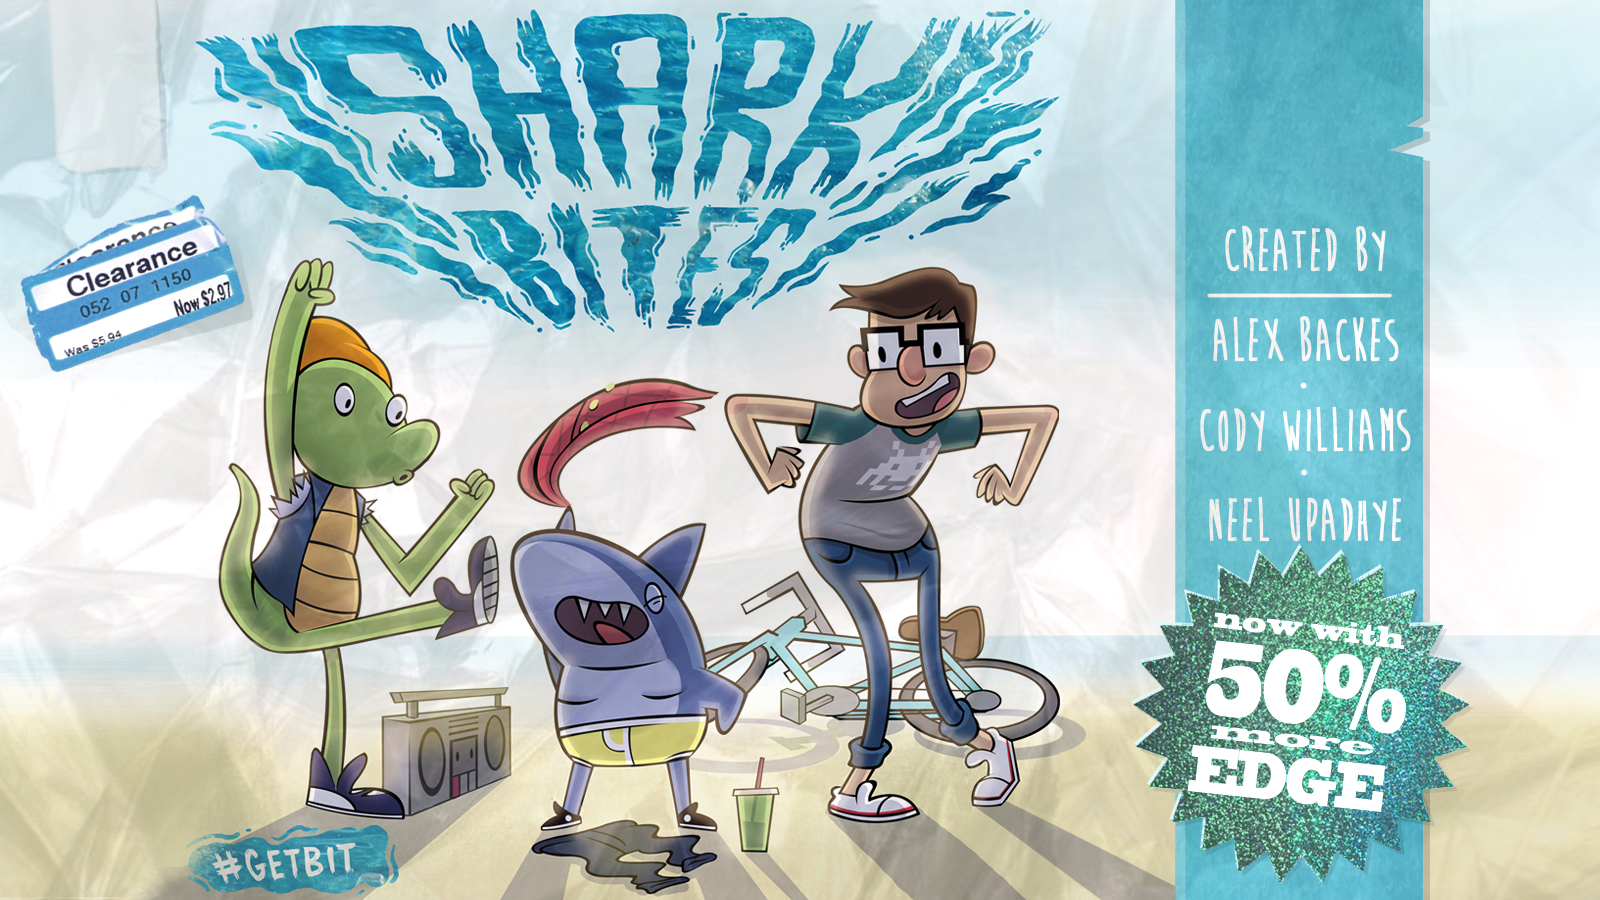 Pitch Splash Page - Disney XD